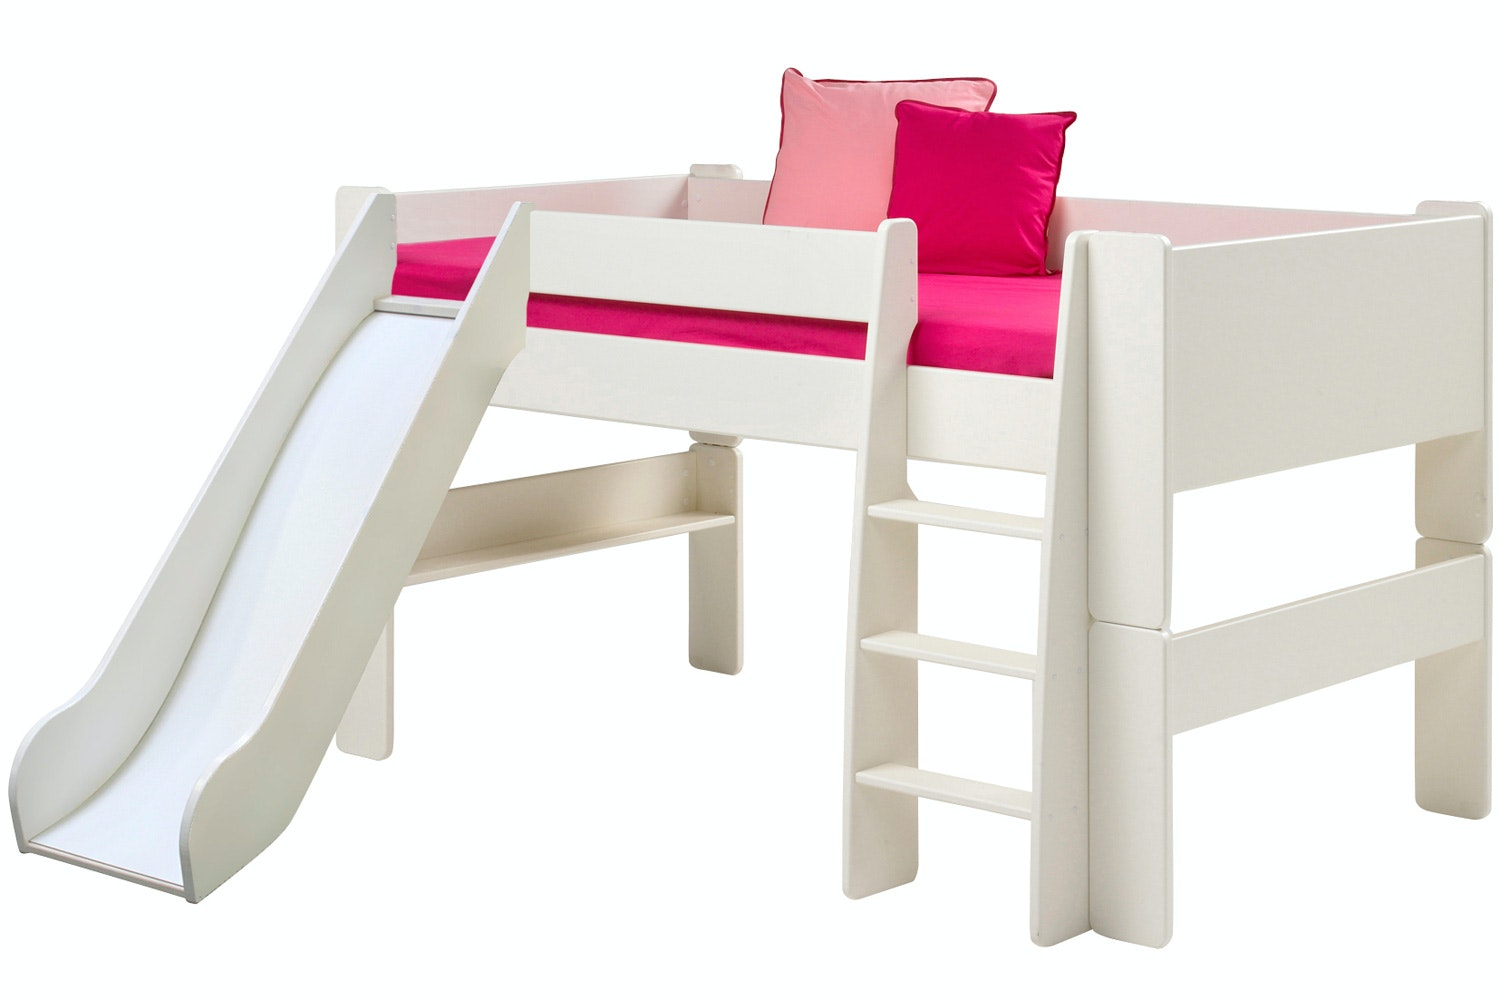 Midsleeper Bed Frame White with Slide